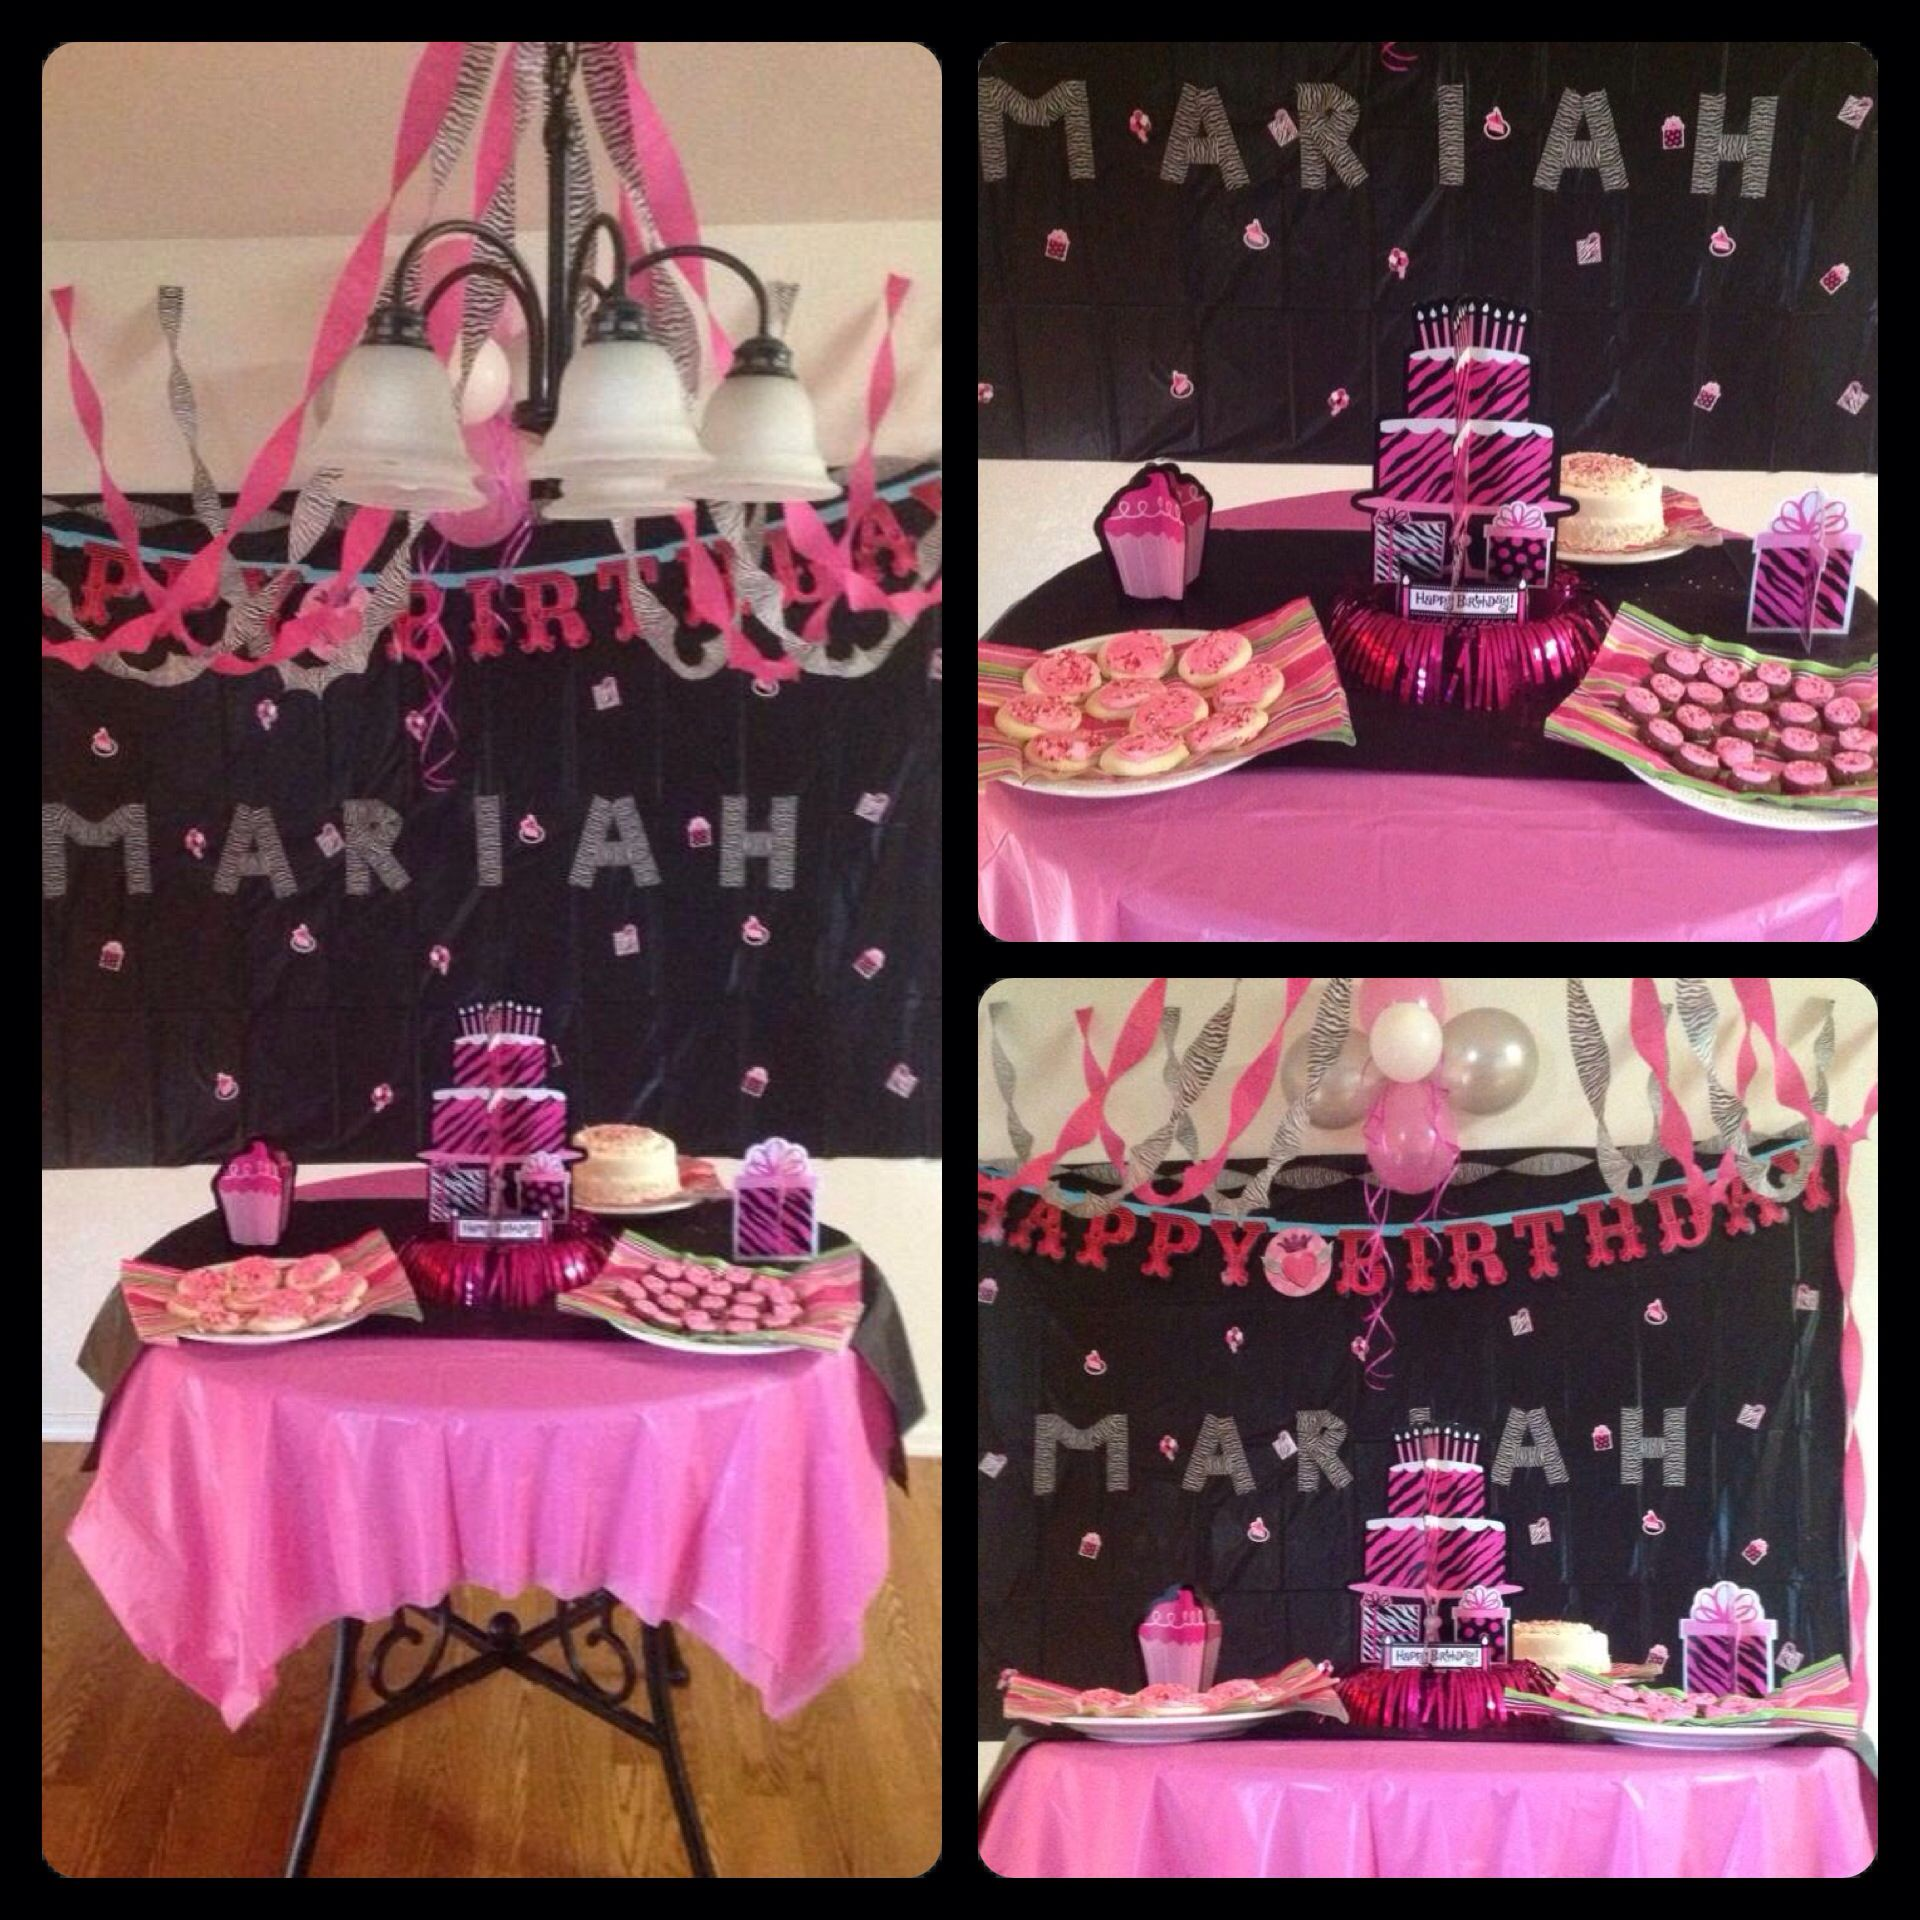 Party ideas Had my 10 year old celebrate her birthday with some